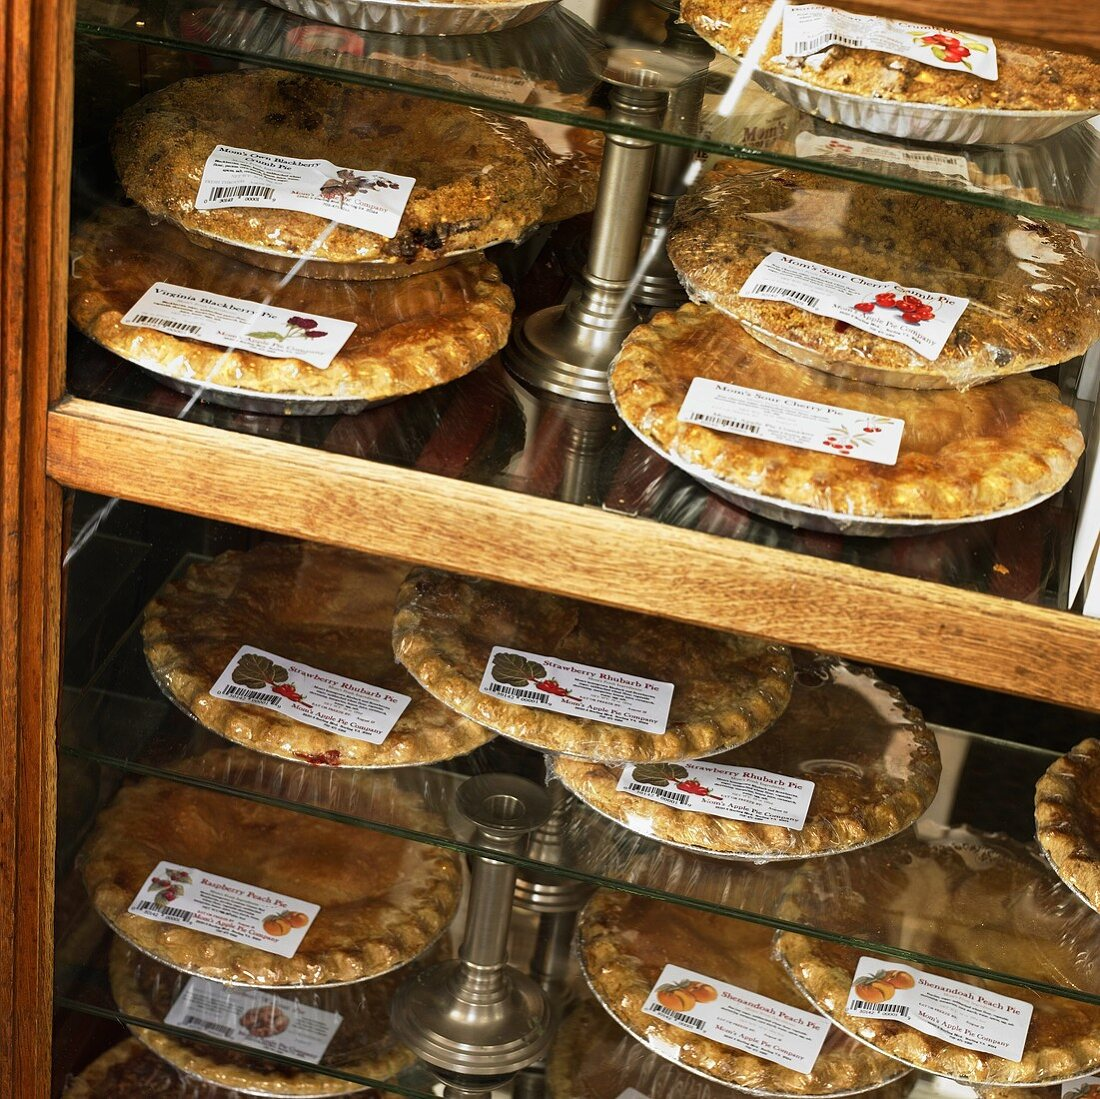 Assorted Sweet Pies in Packaging Displayed in a Bakery Case